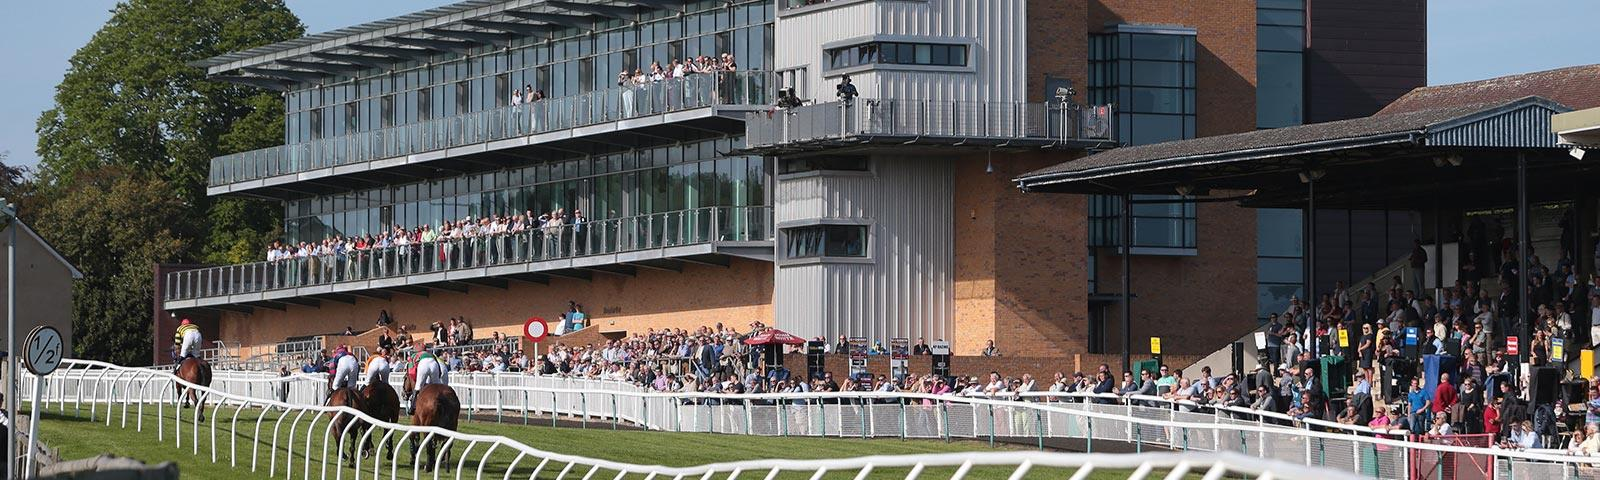 Crowds watching racing at Fontwell Park Racecourse, with the main grandstand building in the background.